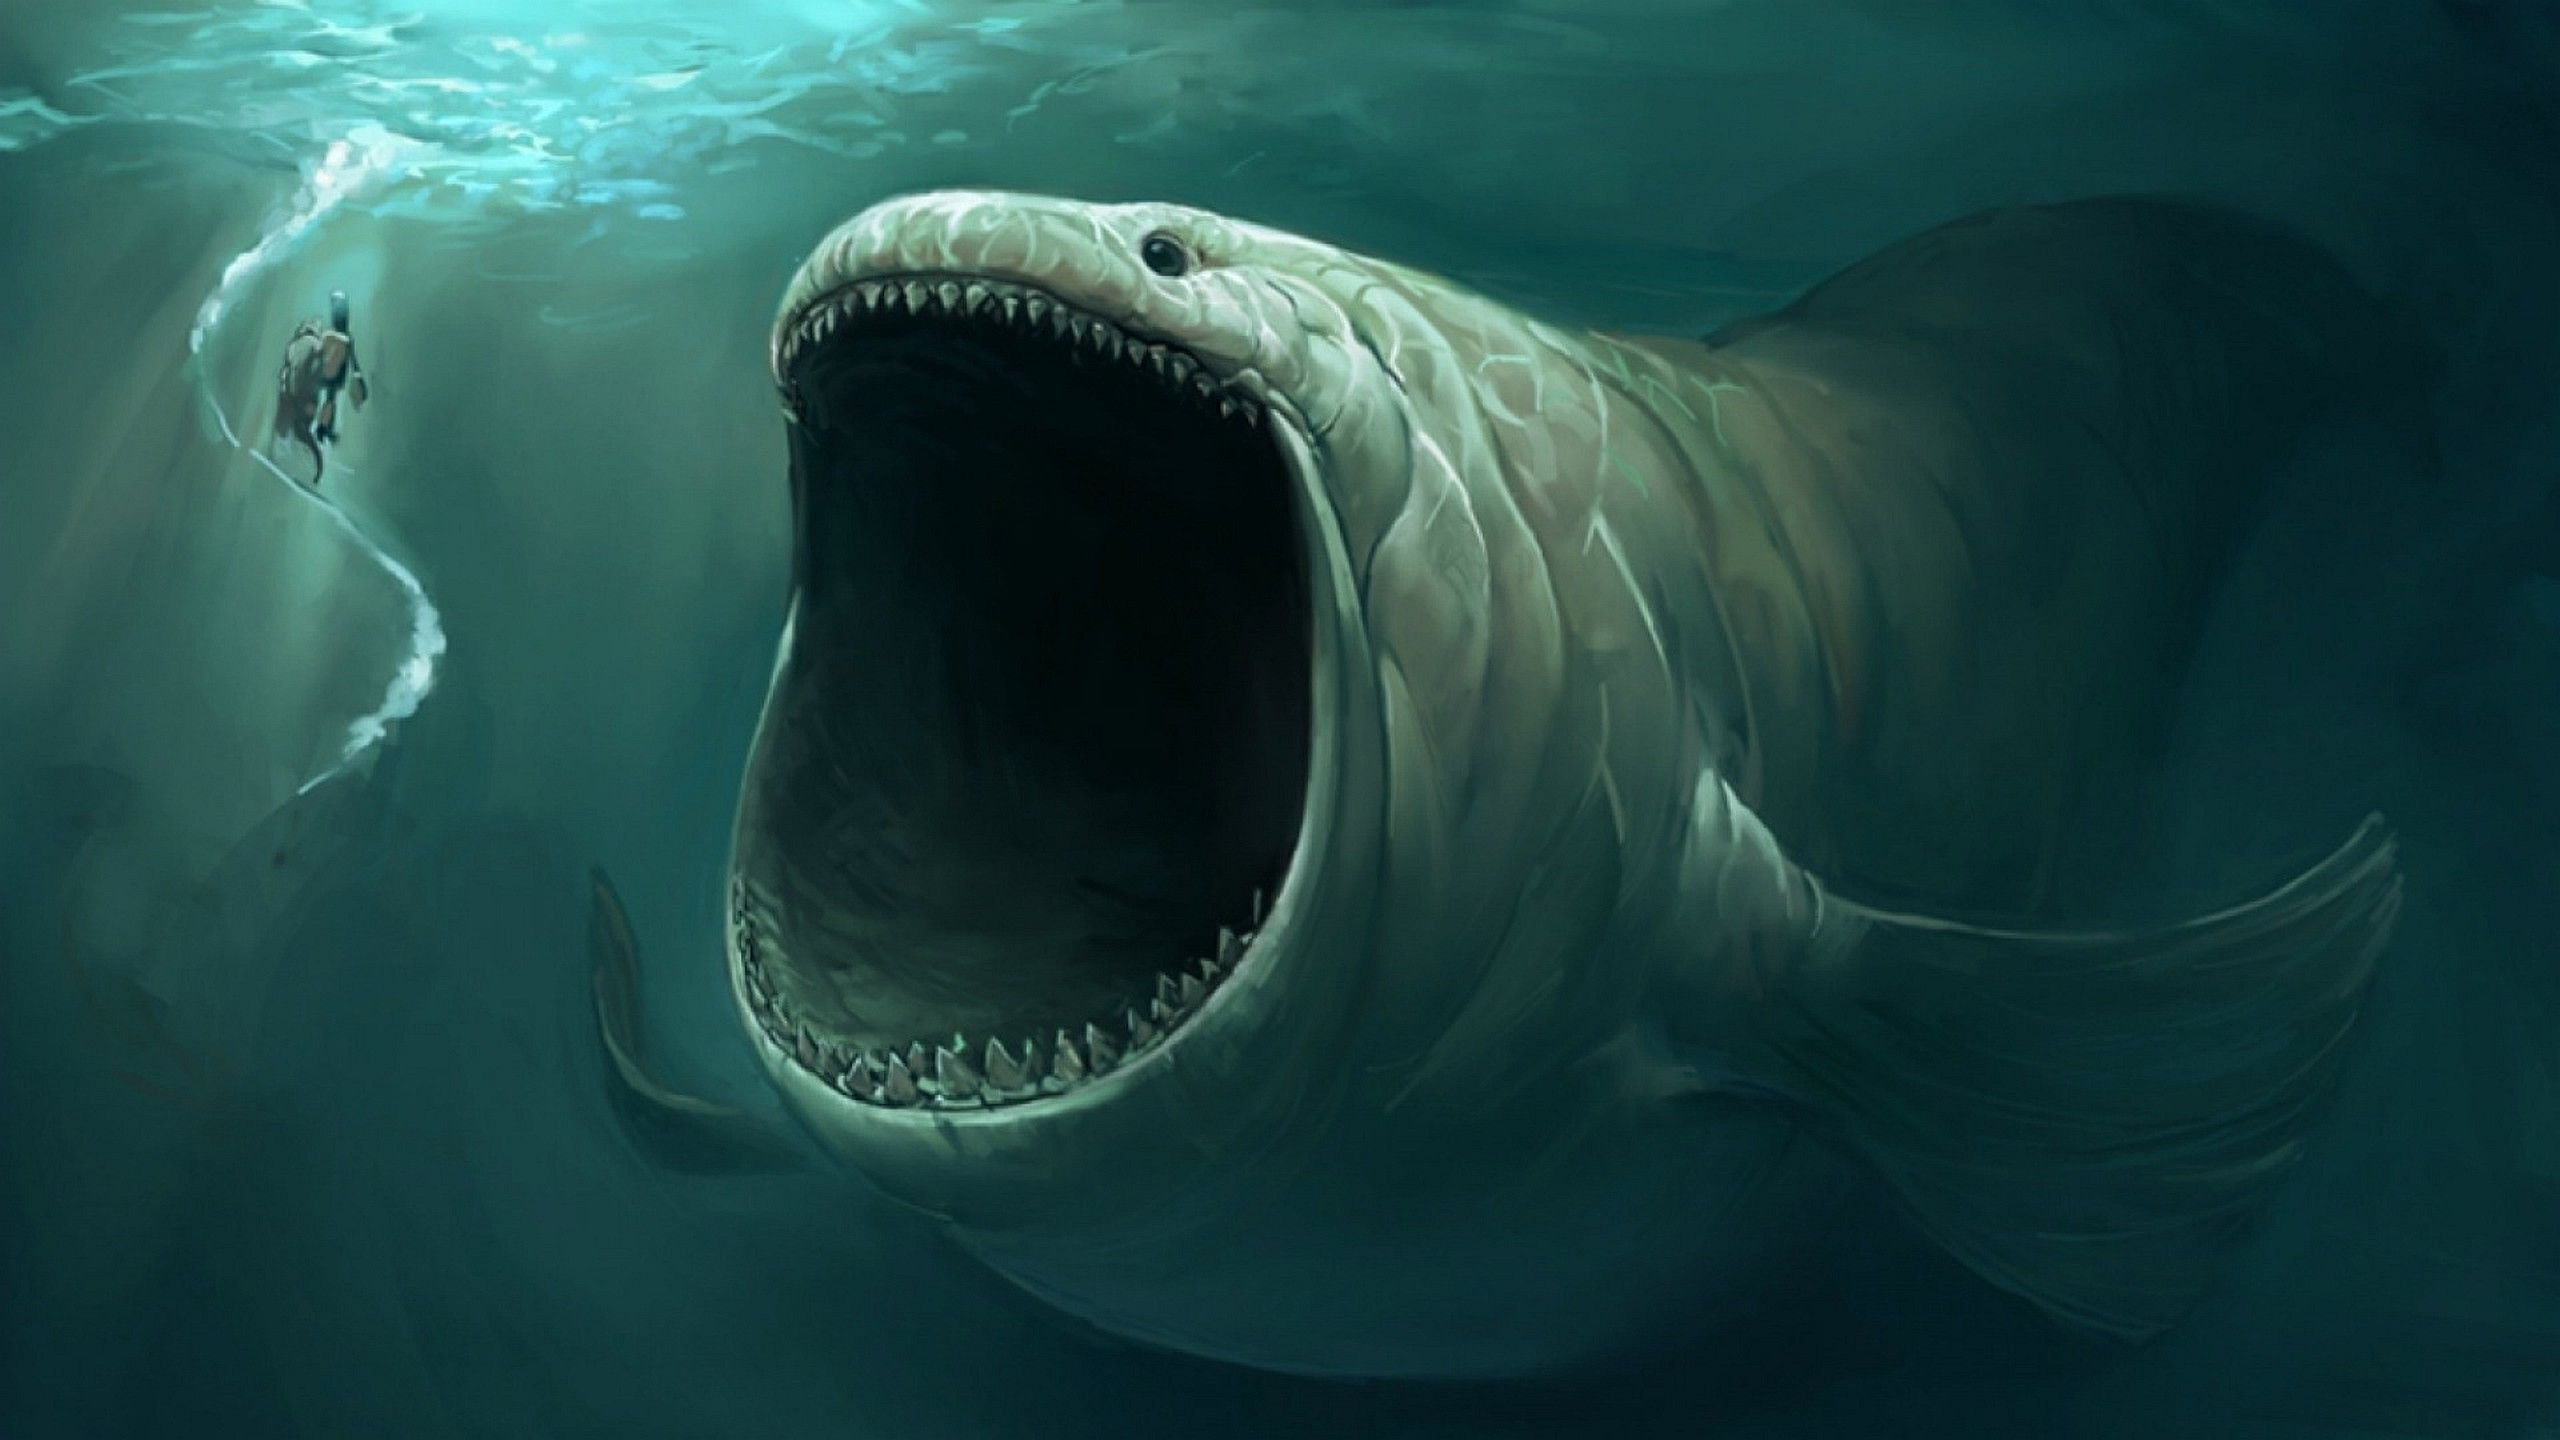 Res: 2560x1440, scary fish in the ocean